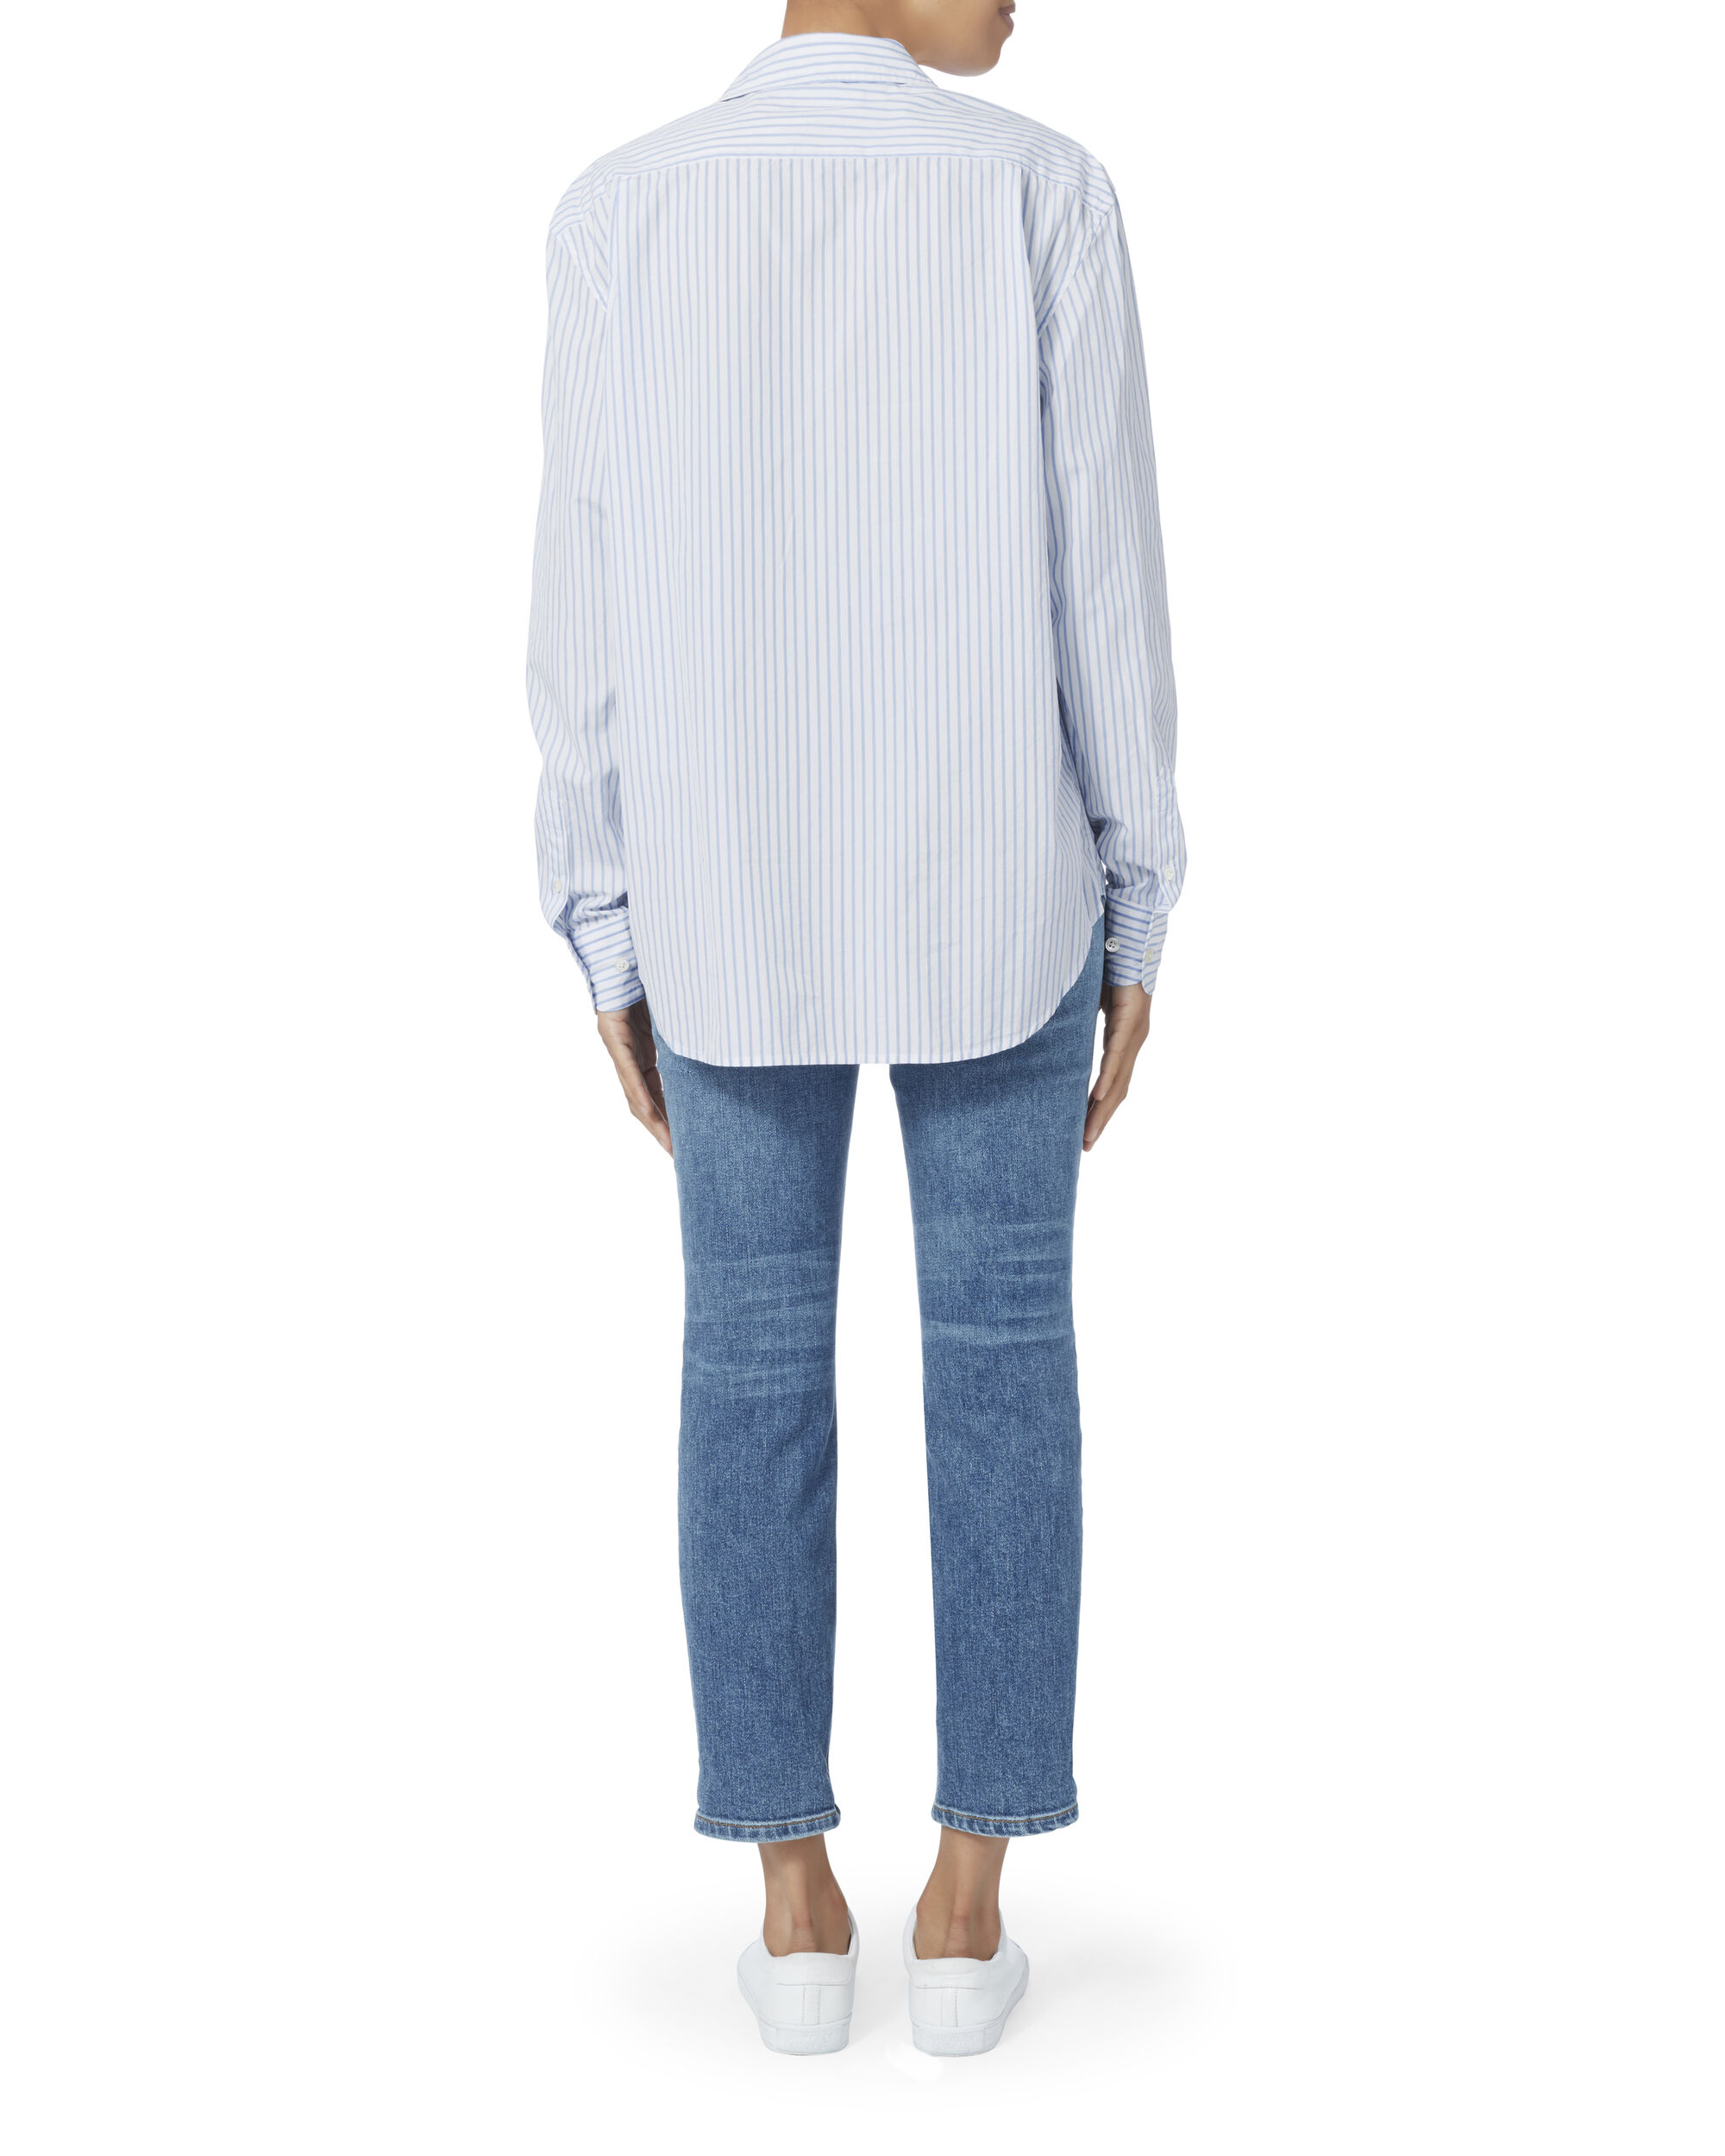 Capri Blue Striped Oversized Shirt, STRIPE, hi-res